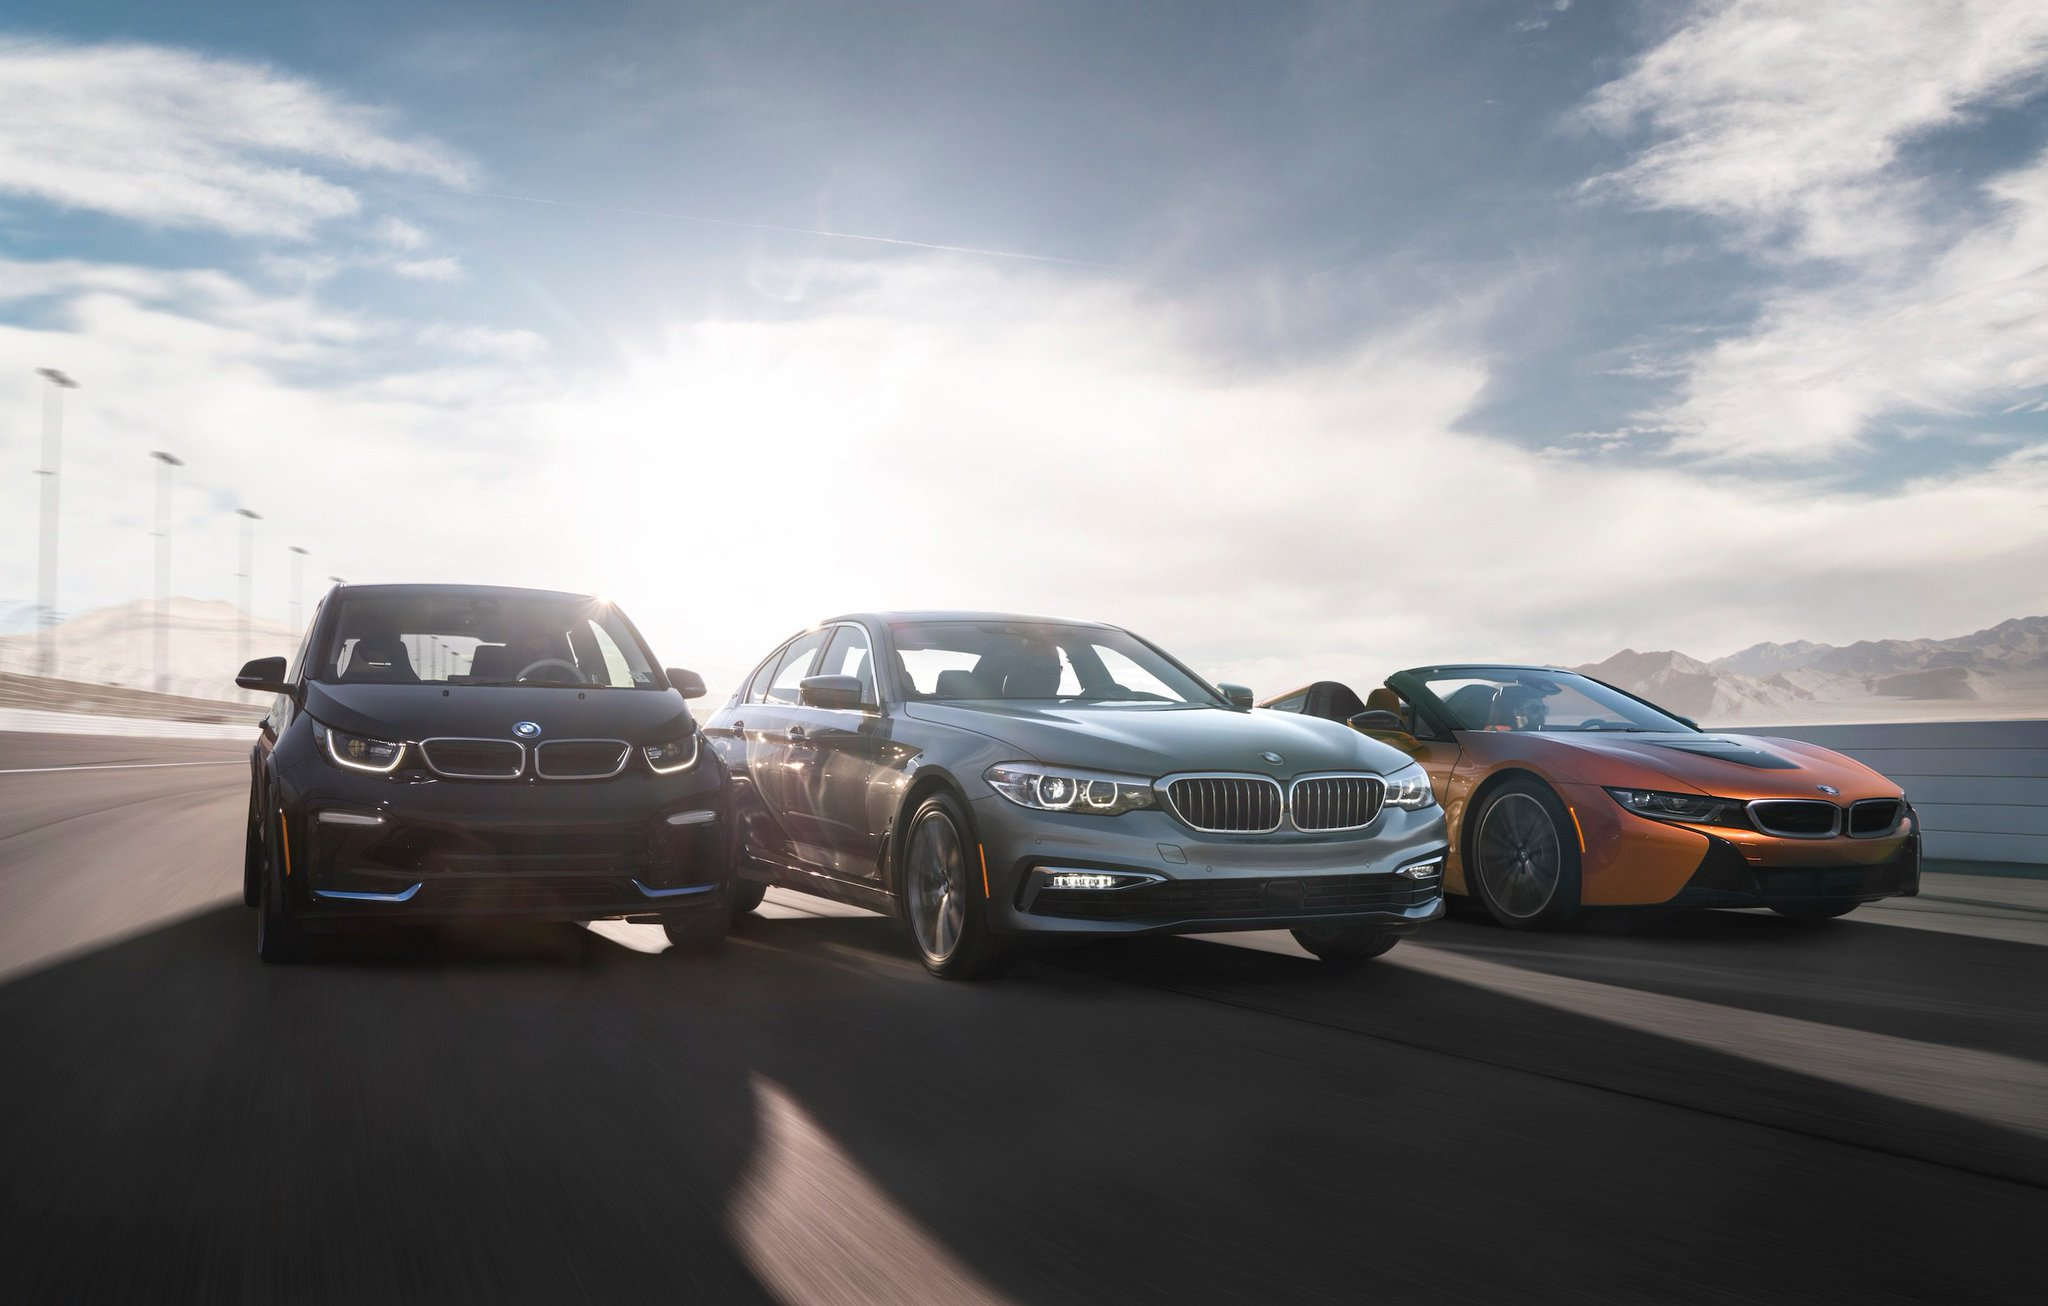 Bmw Of Bay Shore On Twitter Black Friday Offers Are Coming For You Are You Ready Https T Co K7f2pagiix Bmwofbayshore